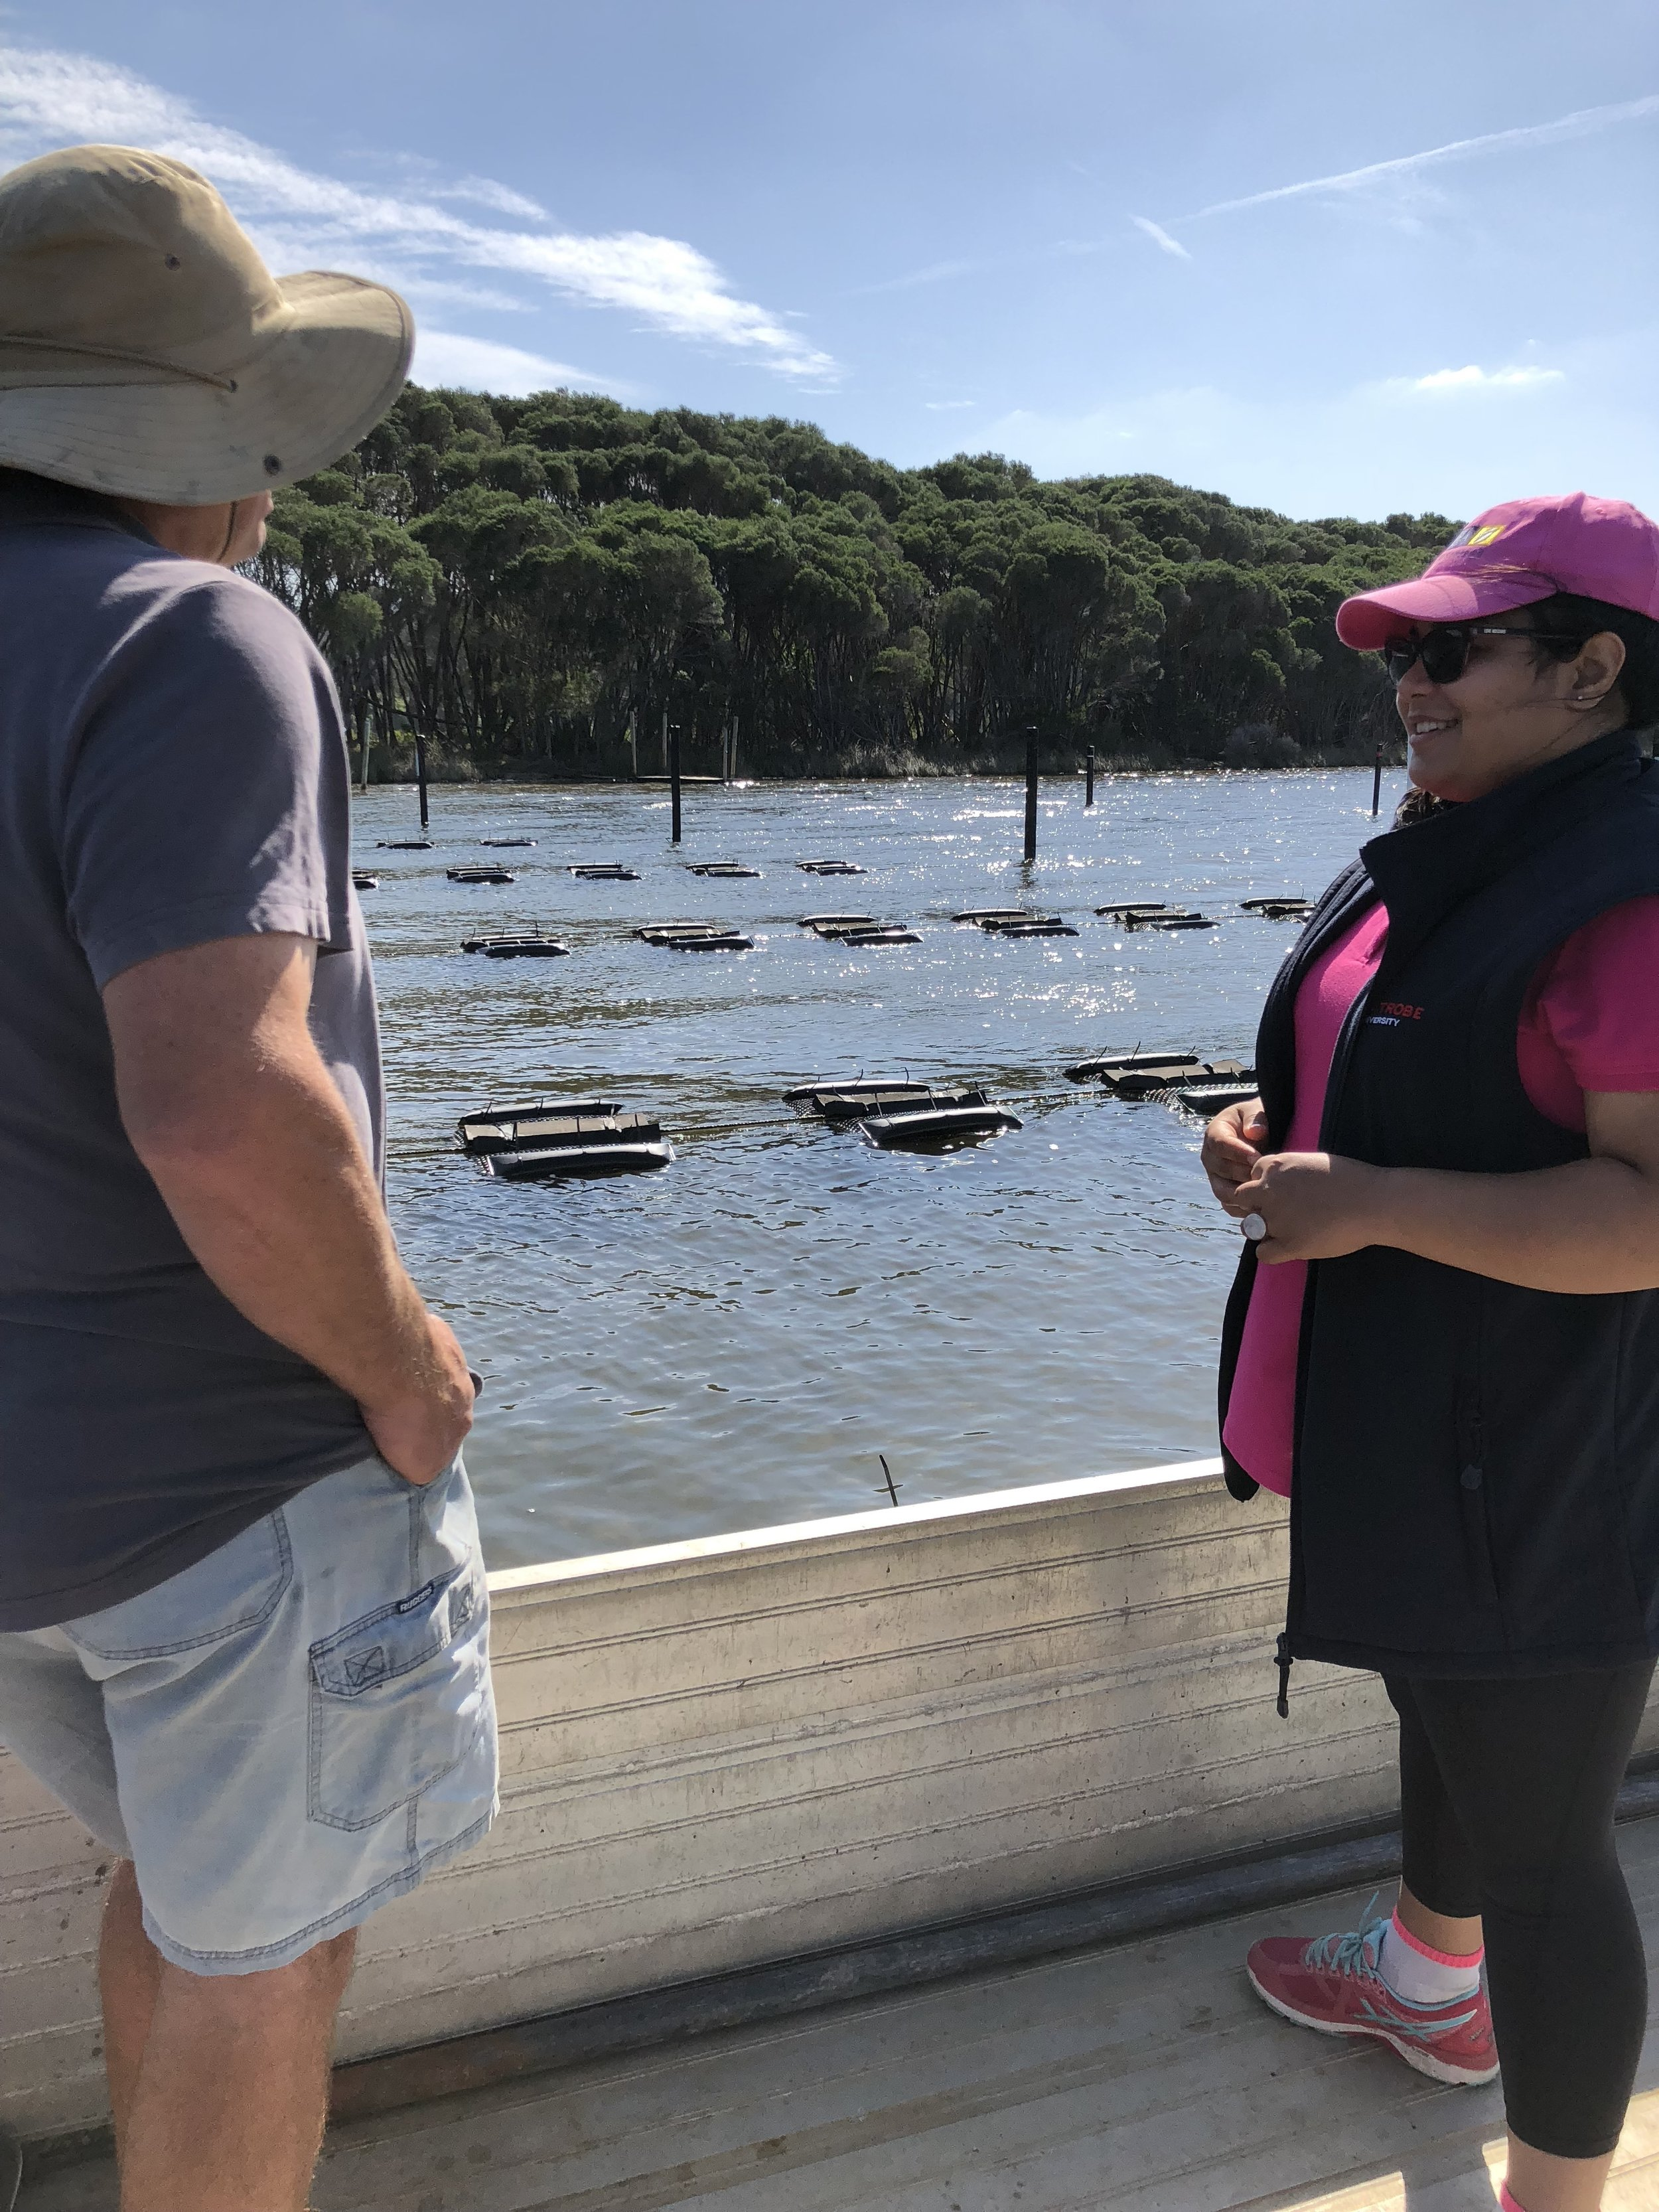 Rayali gaining work experience on an oyster farm in Wonboyn, New South Wales.